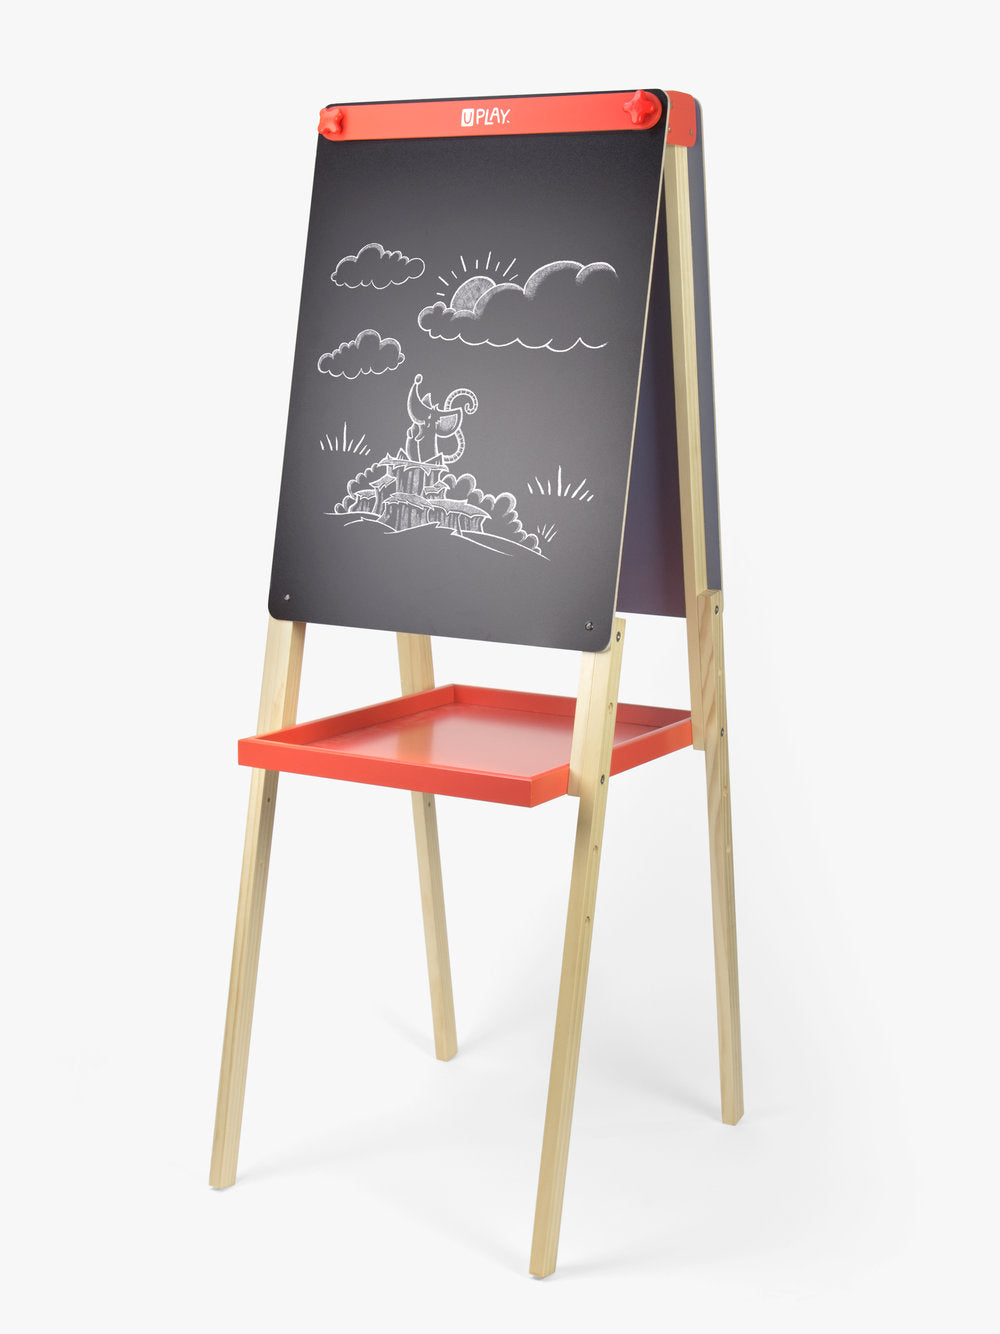 U Play Adjustable Childrens Art Easel